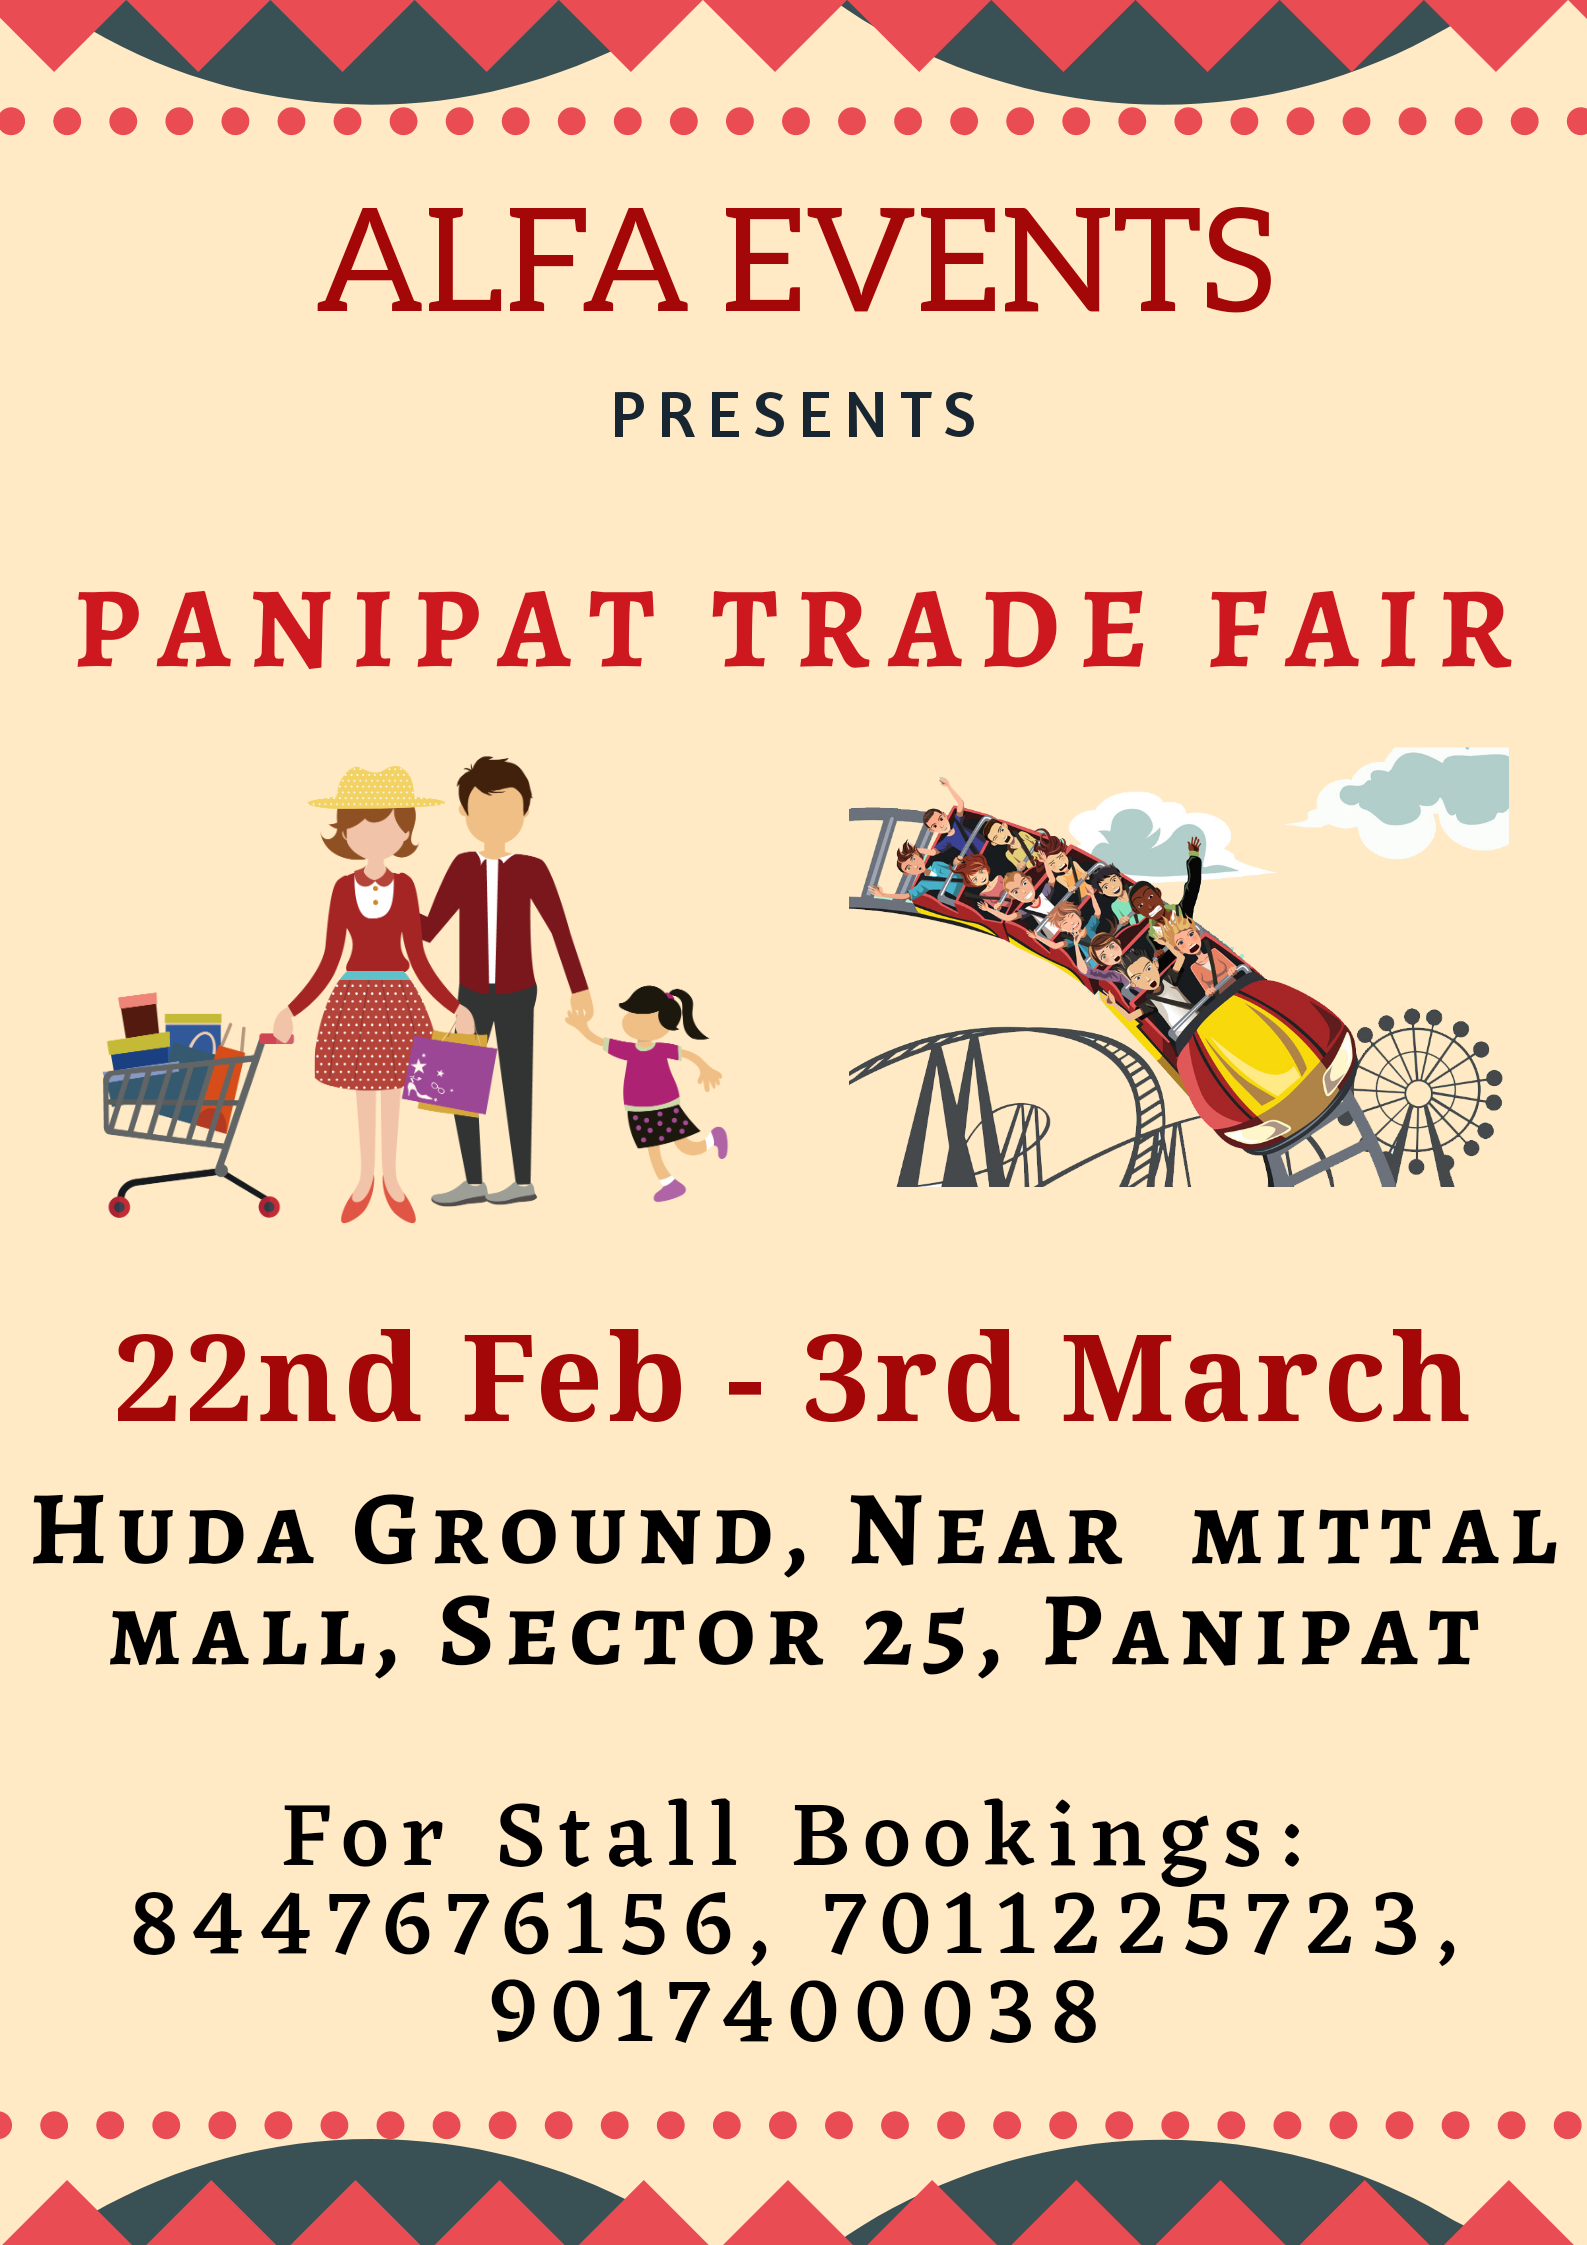 Panipat Trade Fair, Panipat, Haryana, India